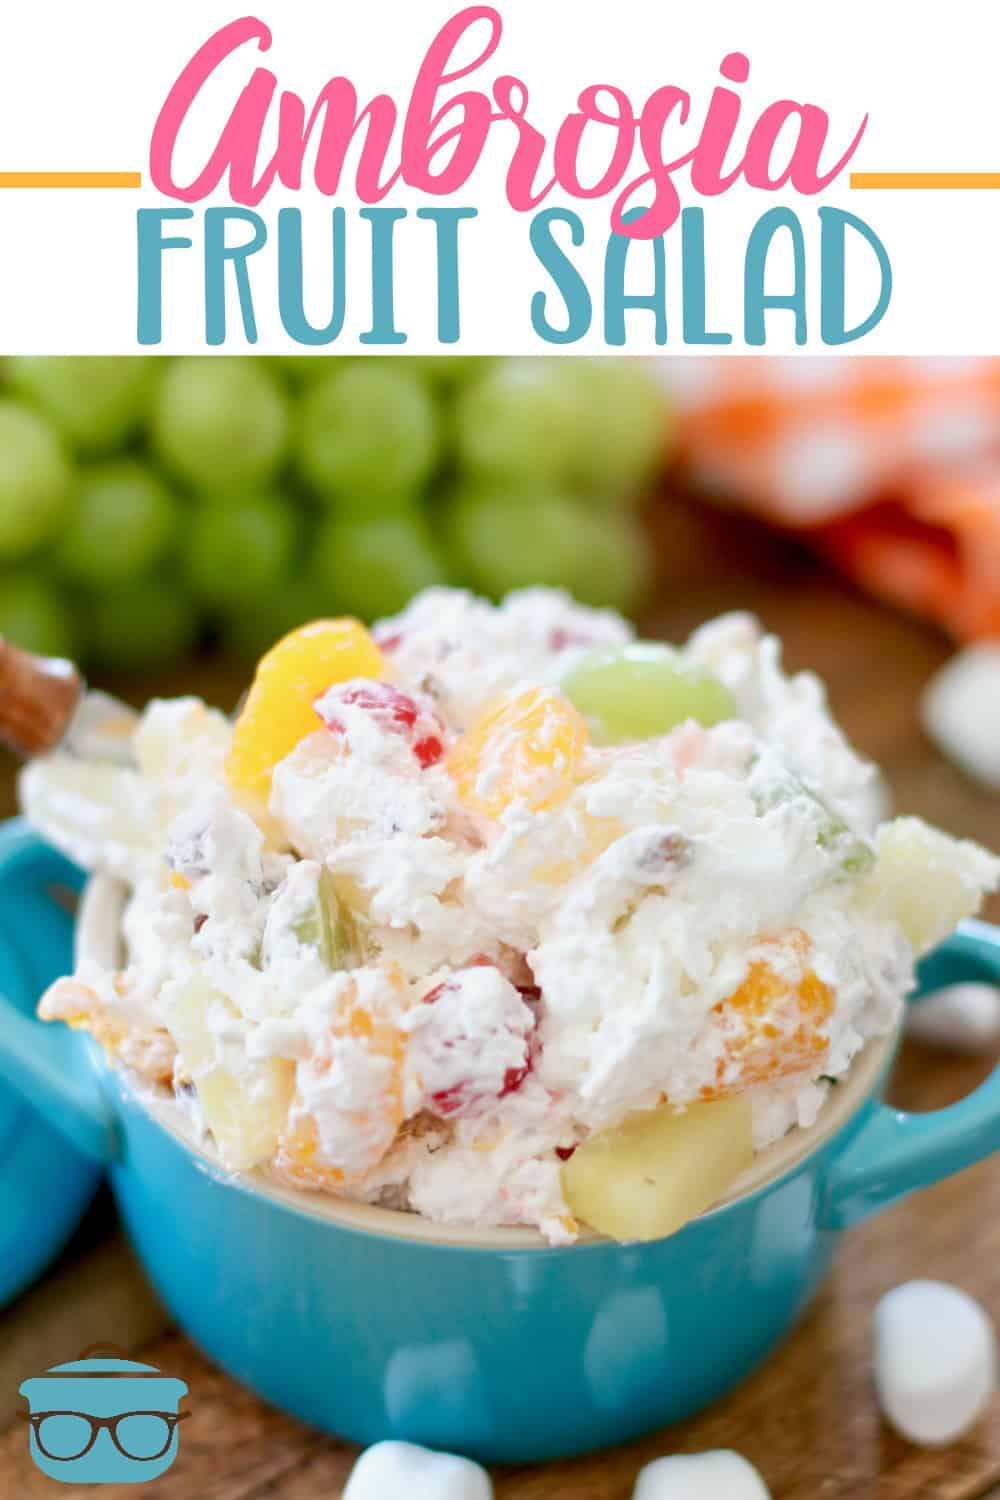 Southern Ambrosia Fruit Salad is a must-have at any gathering. Whipped topping, pineapple, grapes, mandarin oranges, maraschino cherries and coconut flakes! #fruitsalad #ambrosia